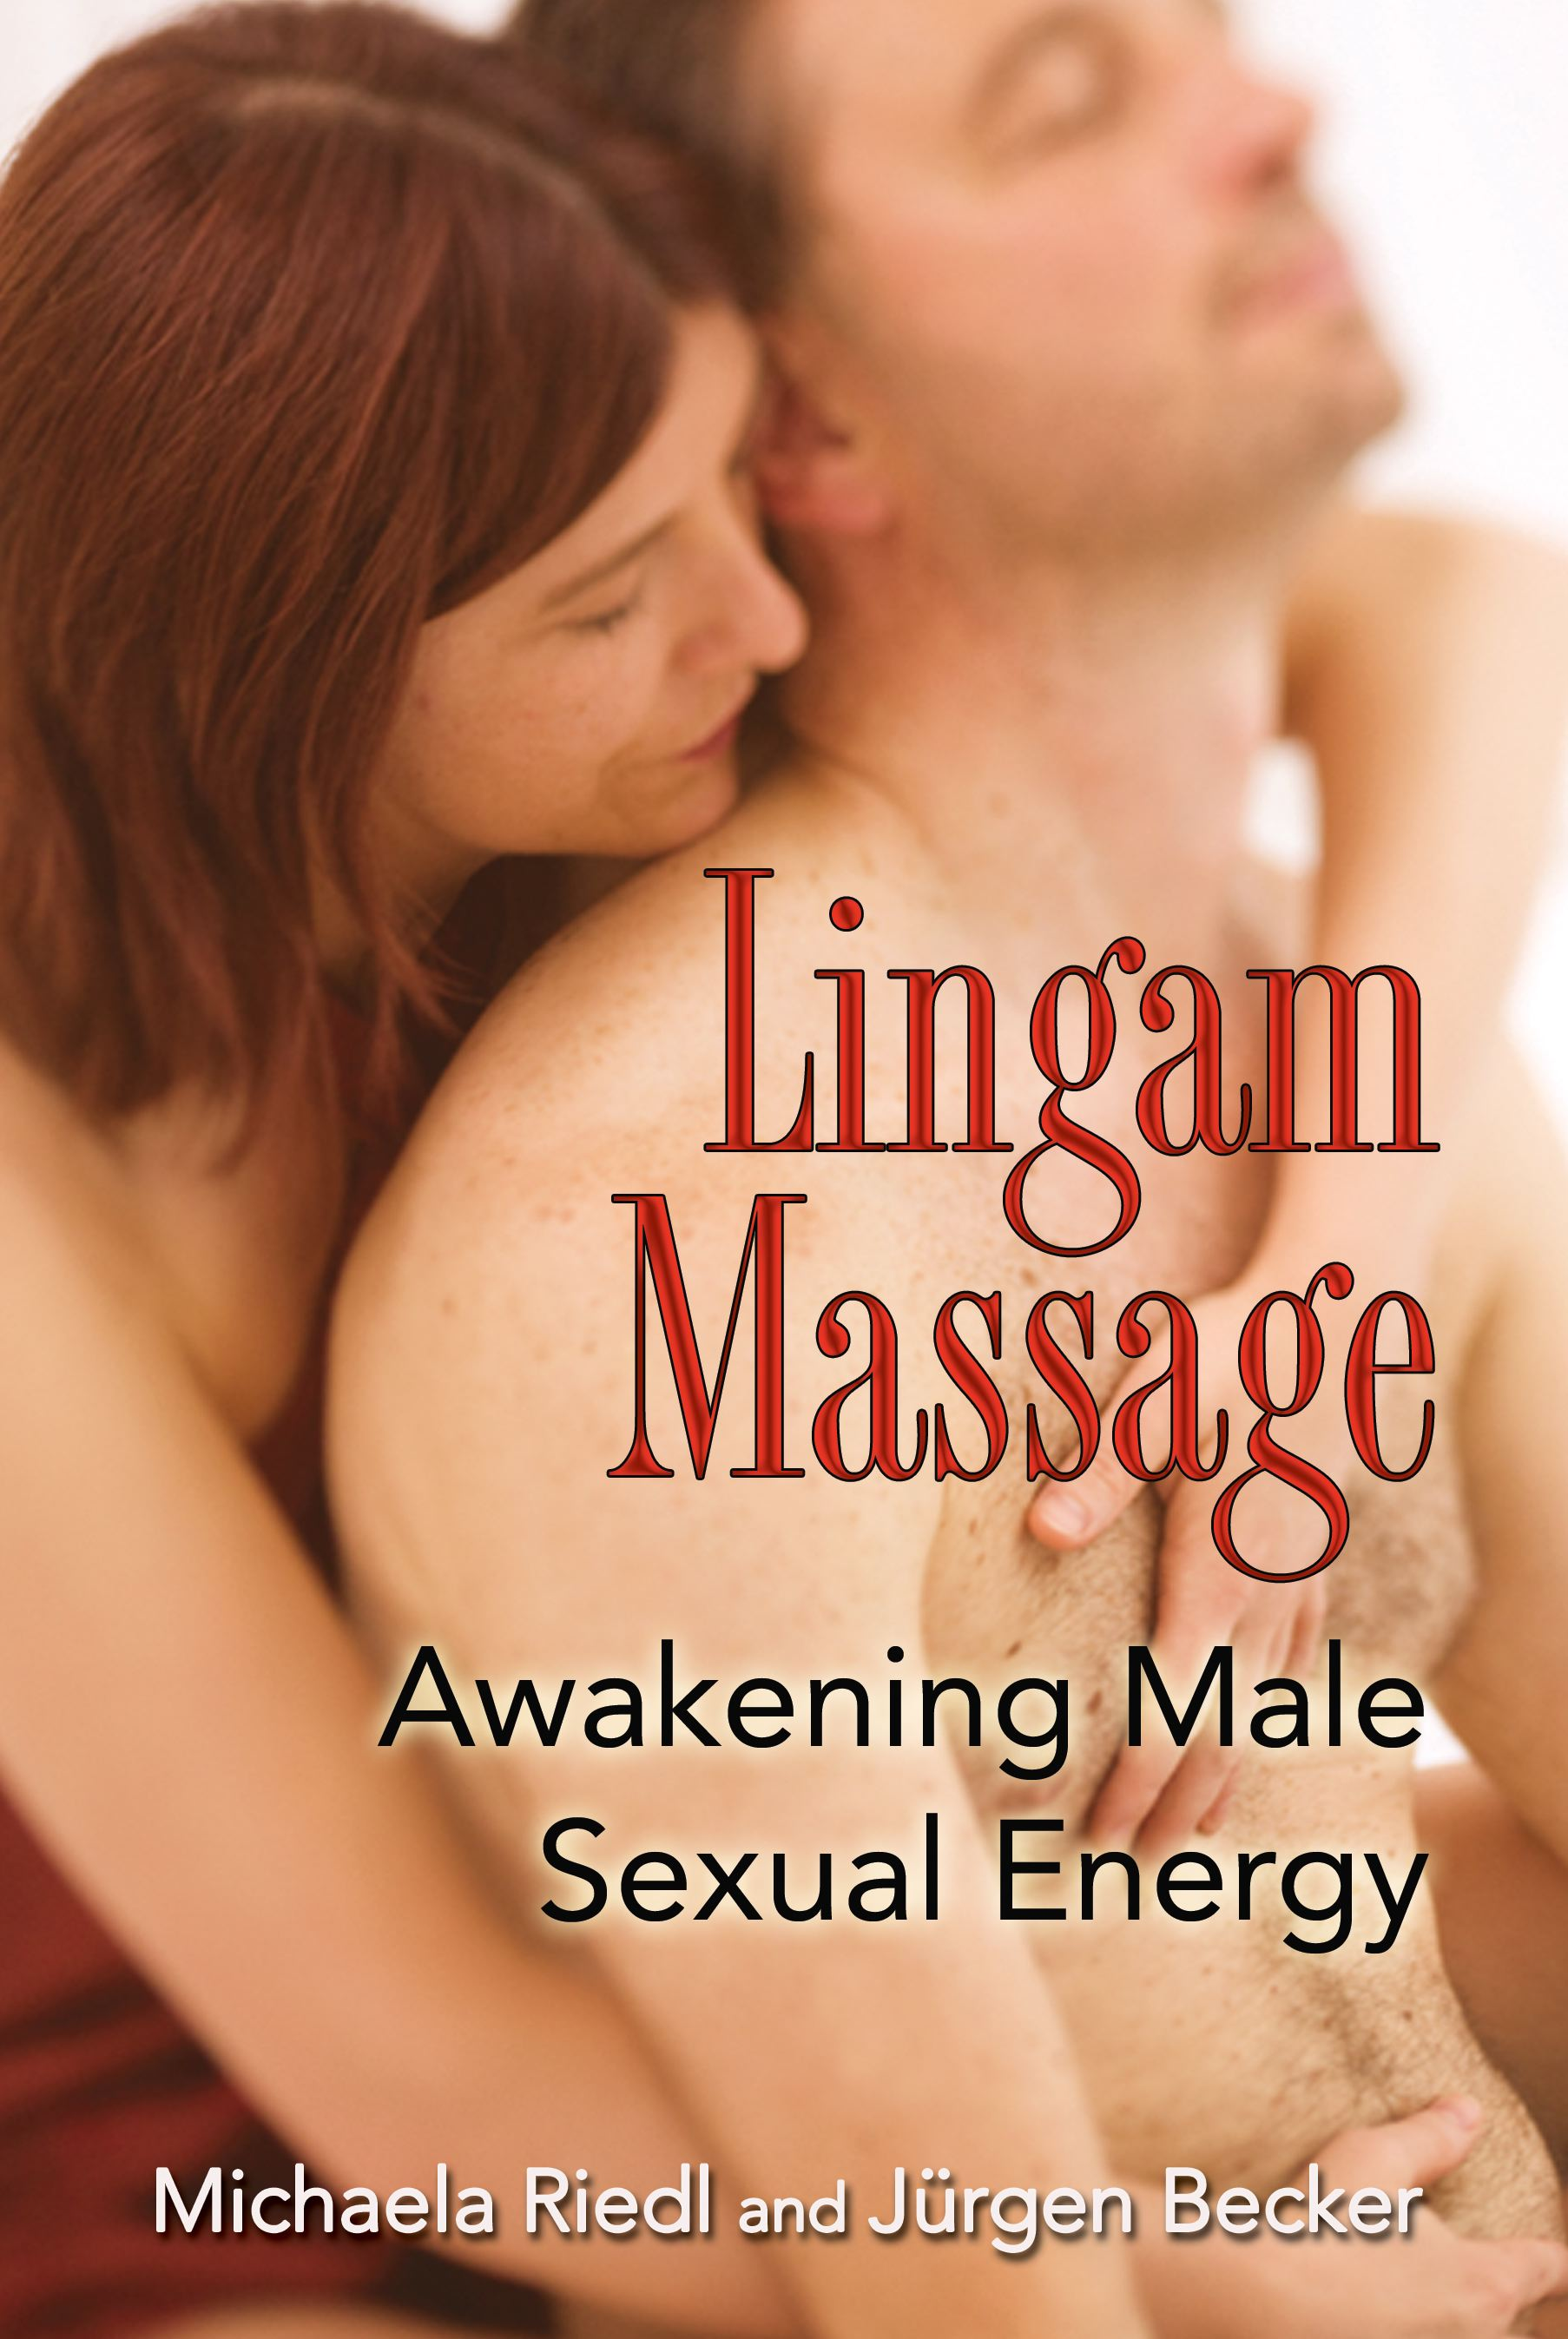 Penis massage by women